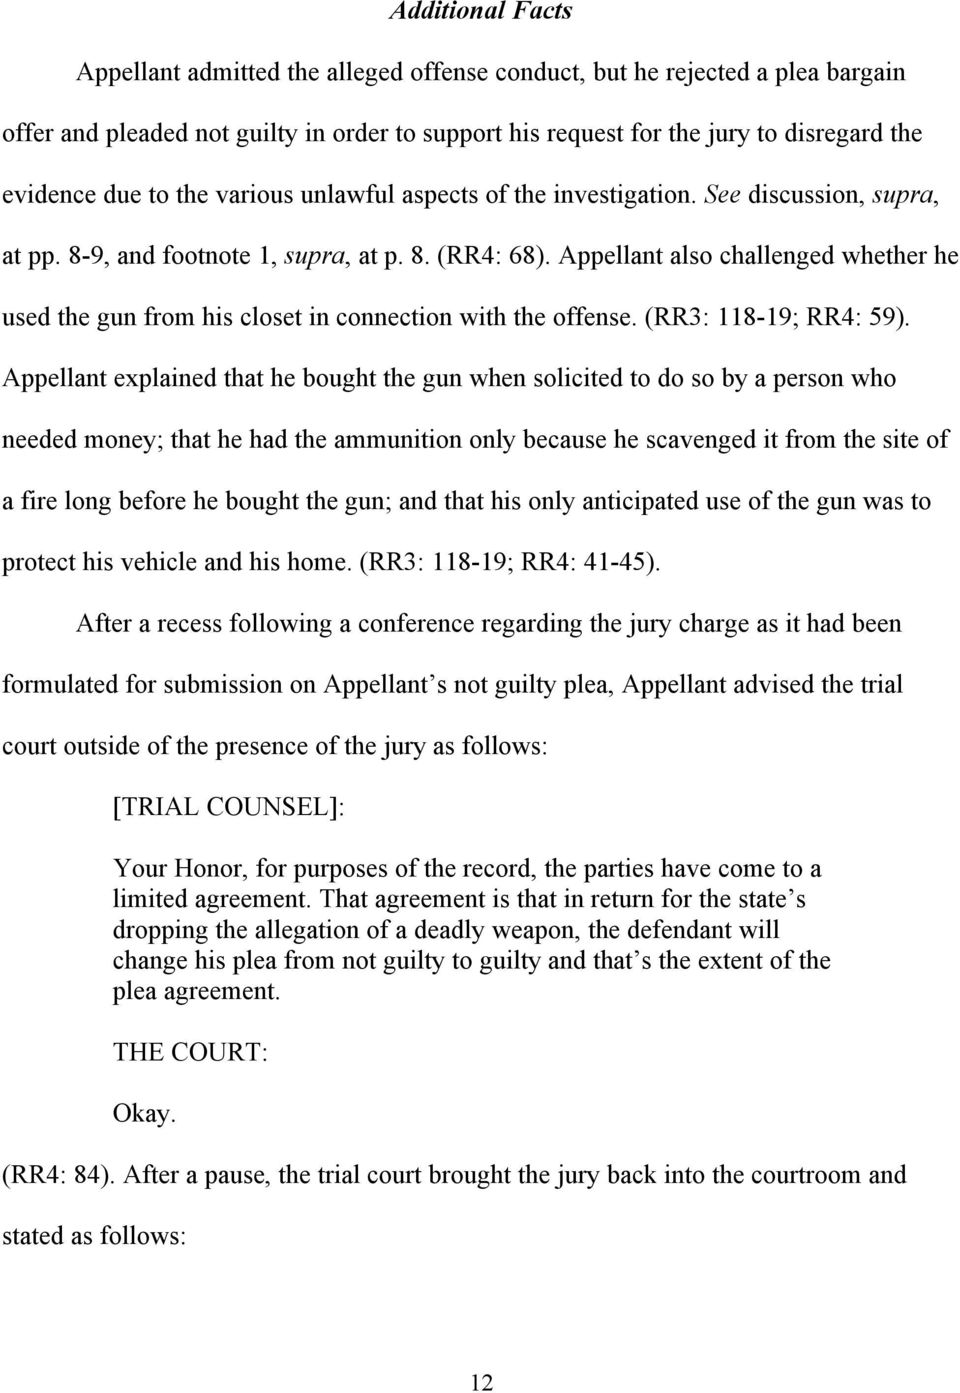 Appellant also challenged whether he used the gun from his closet in connection with the offense. (RR3: 118-19; RR4: 59).